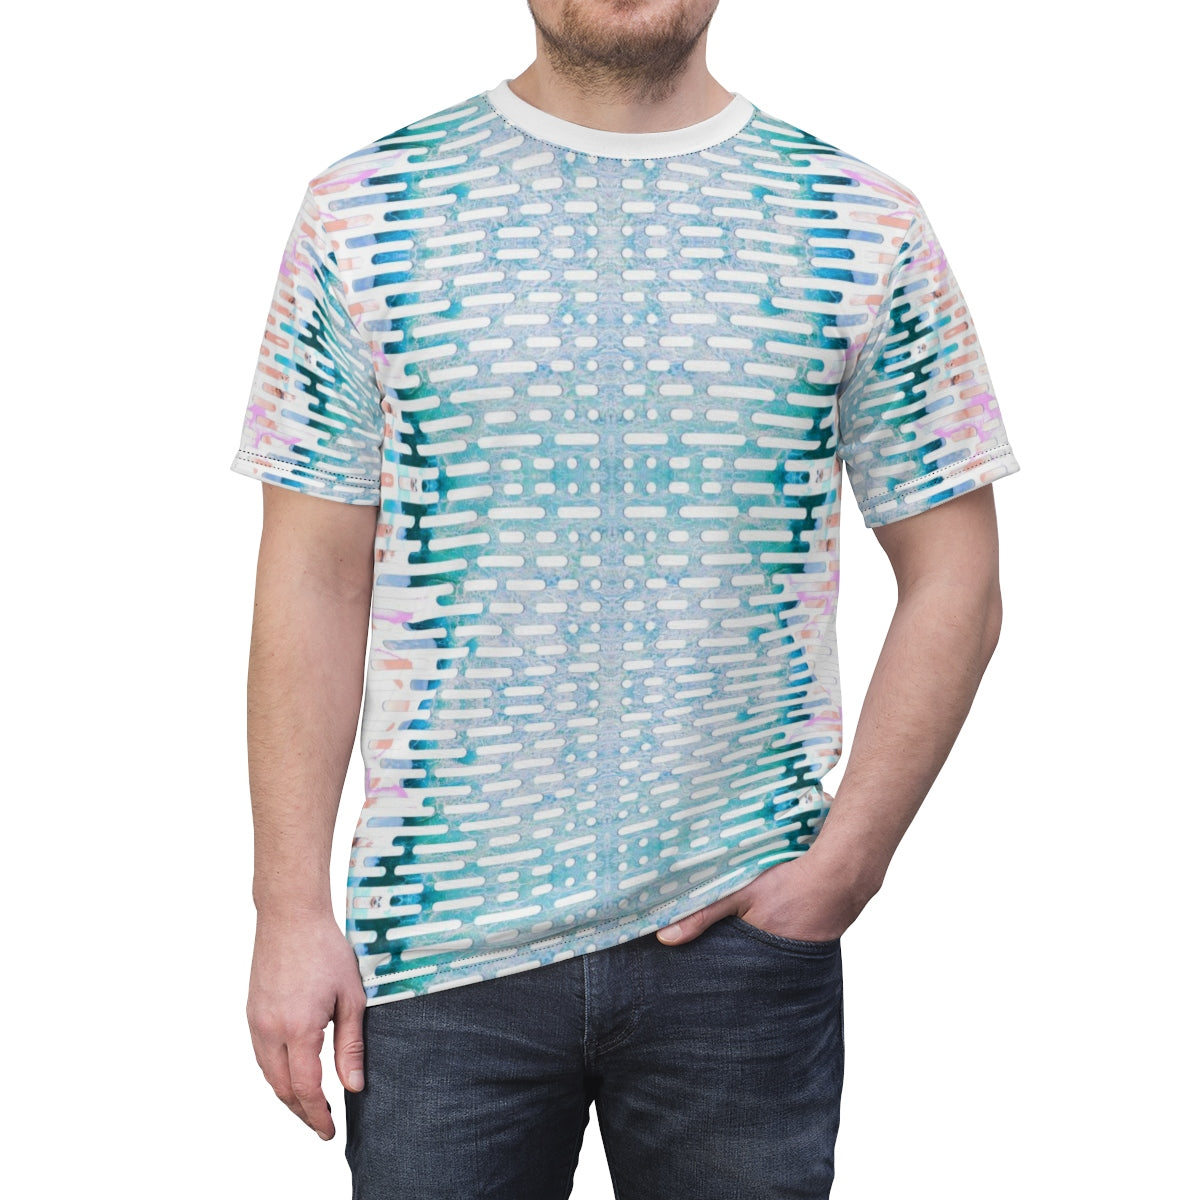 Fiji Islands #0009 (T-shirt)